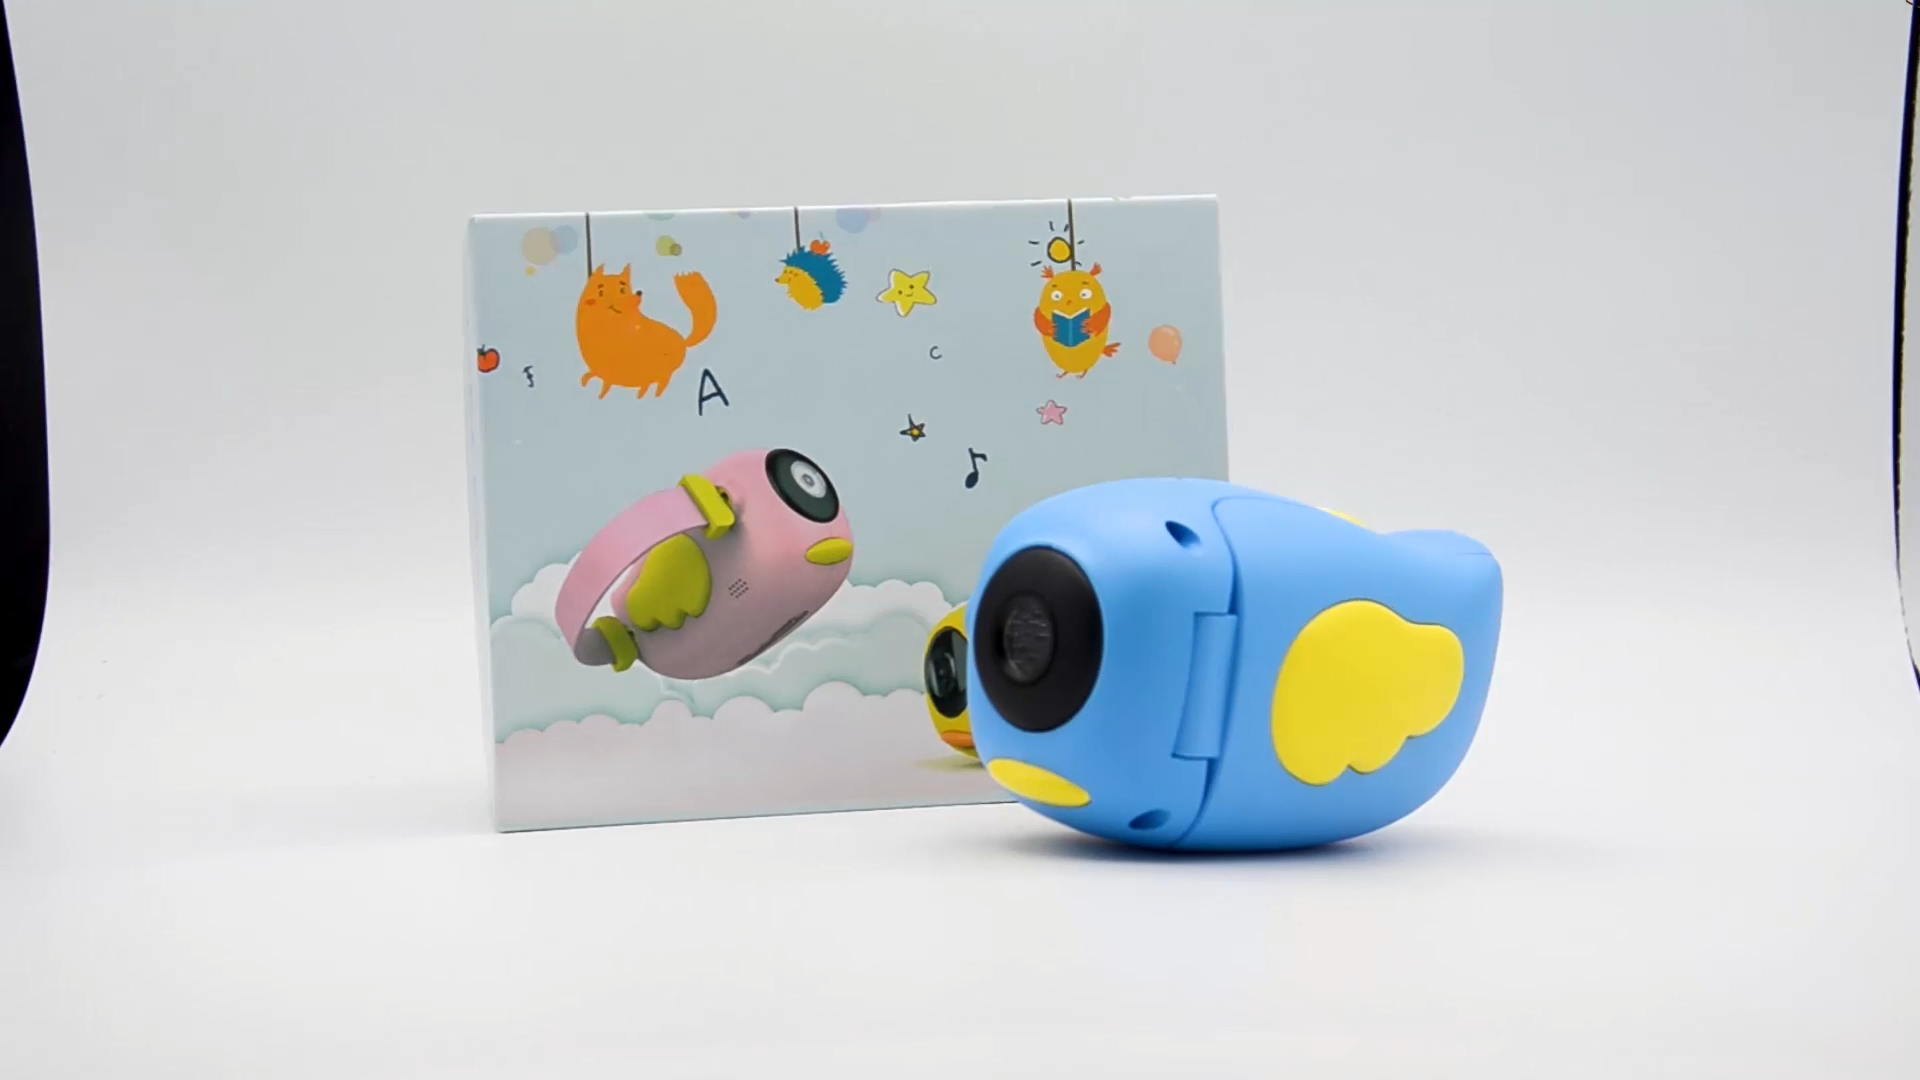 2020 Christmas Toys Outdoor Photography 2 Inch HD Screen Chargeable Digital Mini Camera Kids Cartoon Cute Camera for Child Birth